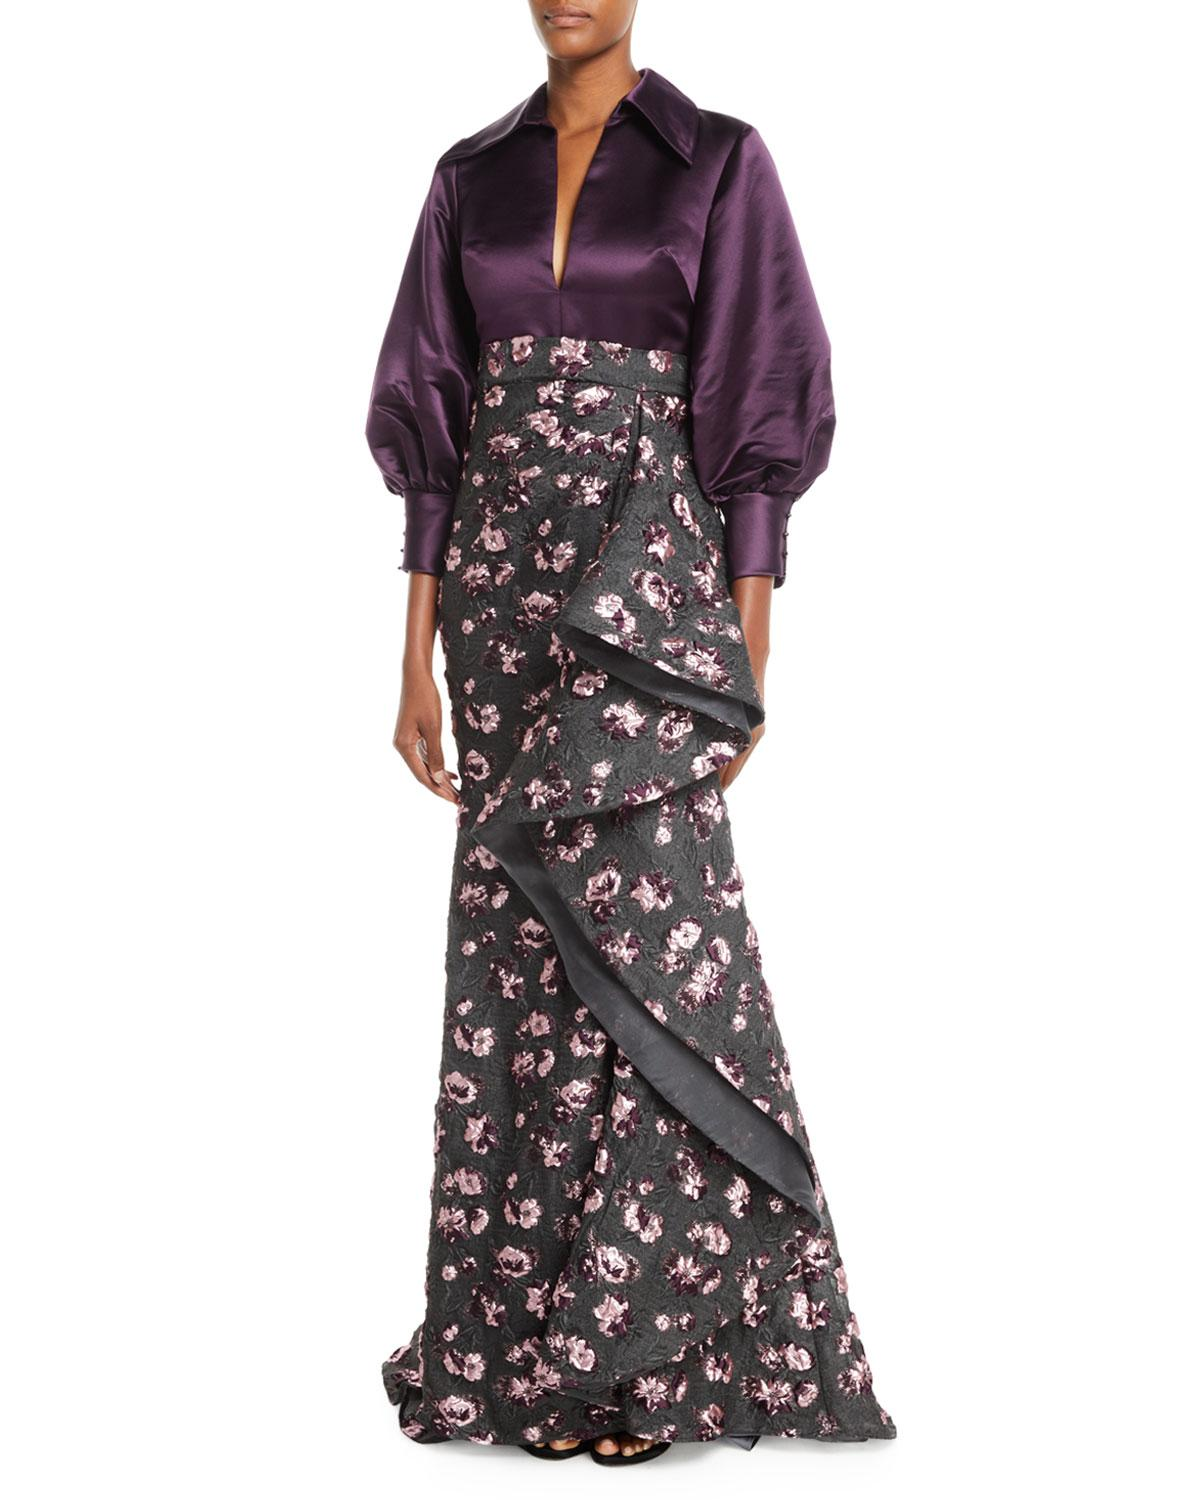 Badgley Mischka Split-Neck Long-Sleeve Satin-Top Cascade Floral-Embroidered Evening Gown In Black/Purple